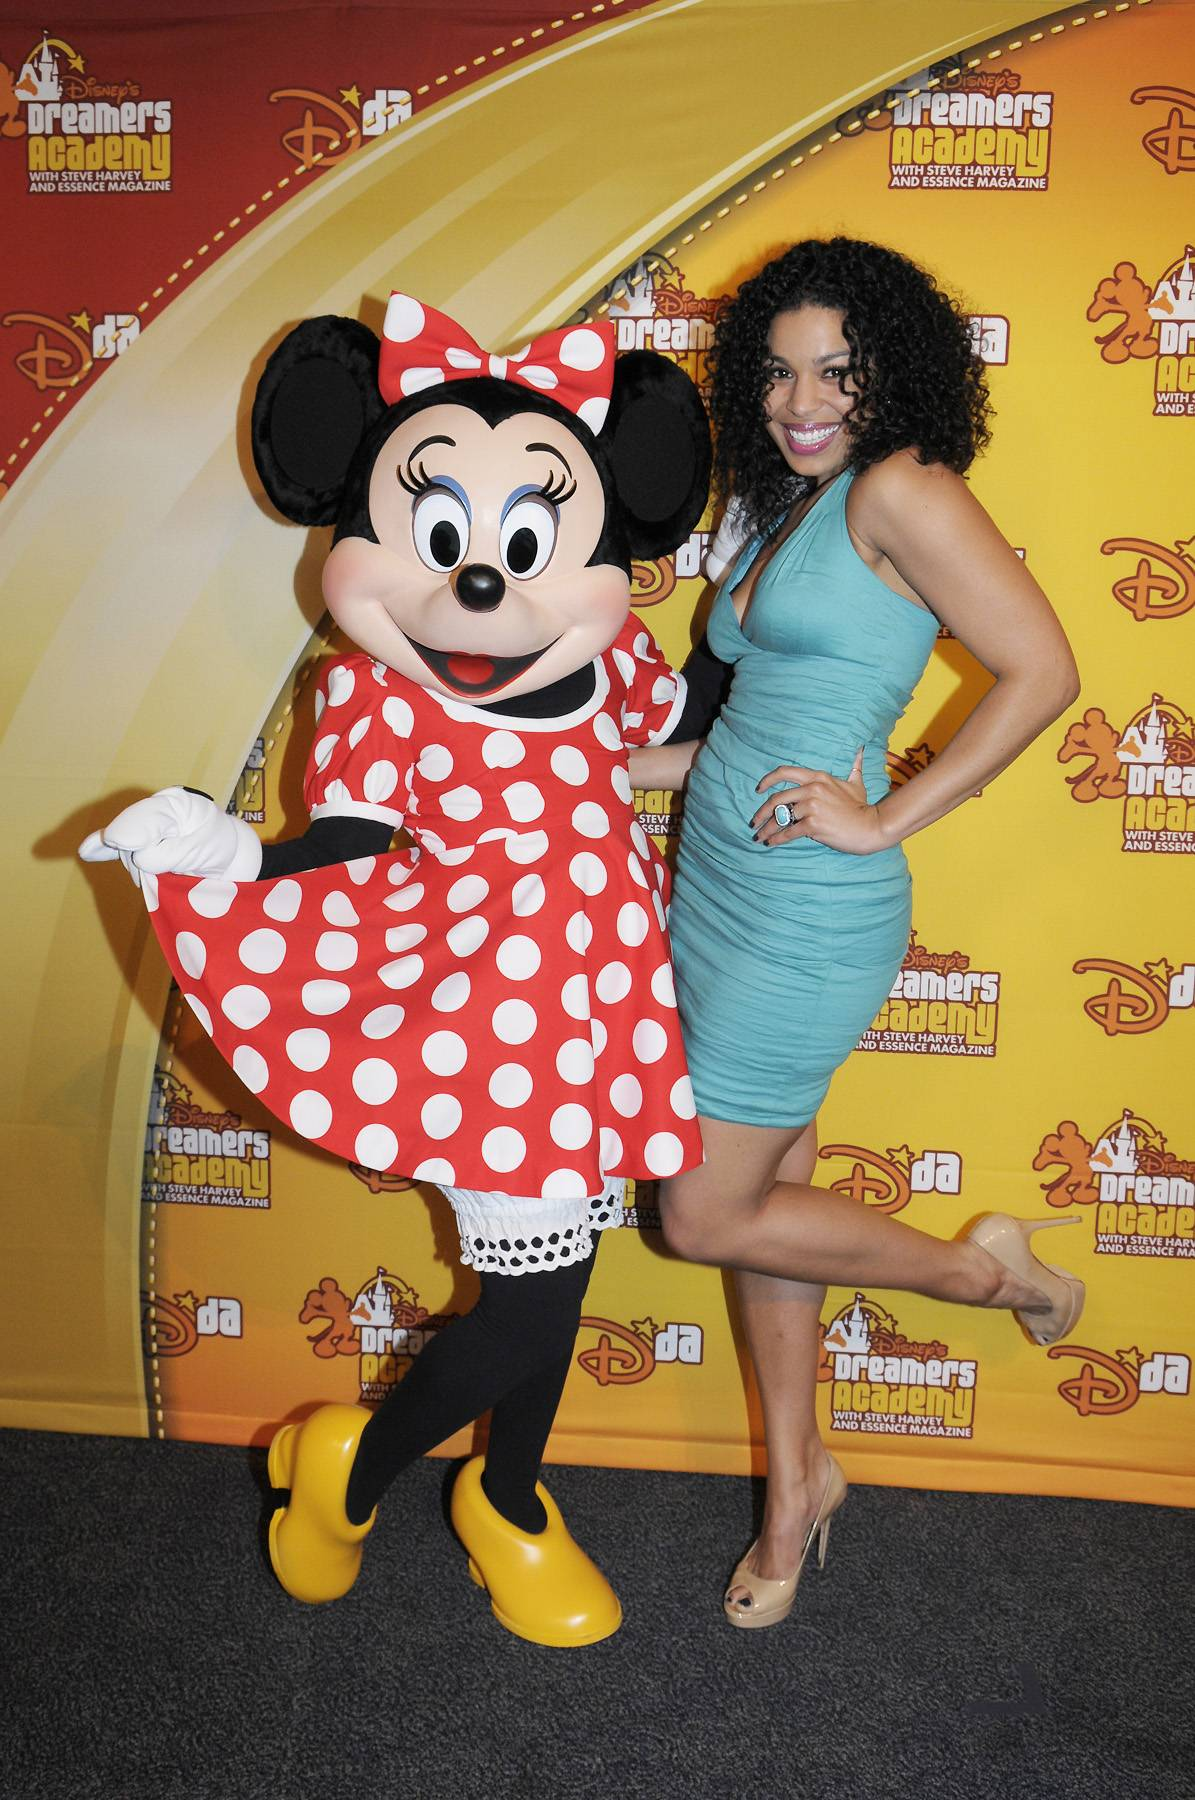 """Famous Friends - After dazzling the Dreamers with her hit """"One Step at a Time,"""" Jordin Sparks rubs elbows with Minnie Mouse during the Dreamers Academy commencement ceremony on March 11. (Photo: Phelan Ebenhack)"""